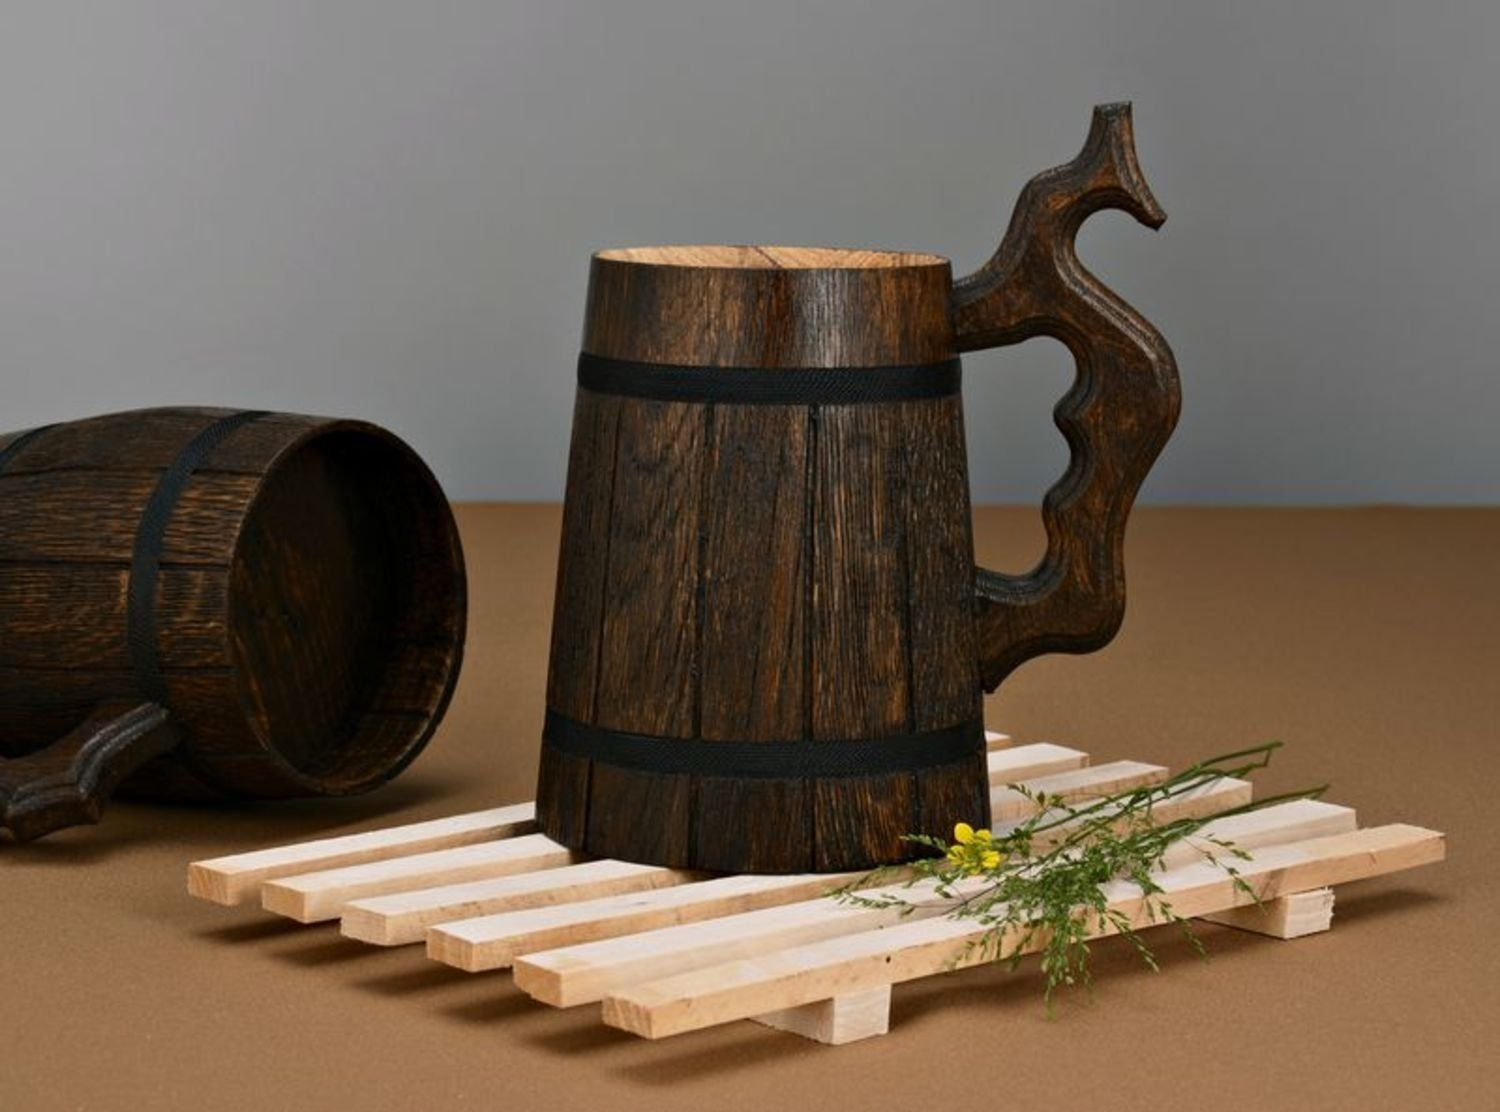 Amazon.com   Handmade wooden brown beer mug with carved handle great gift ideas: Beer Mugs & Steins